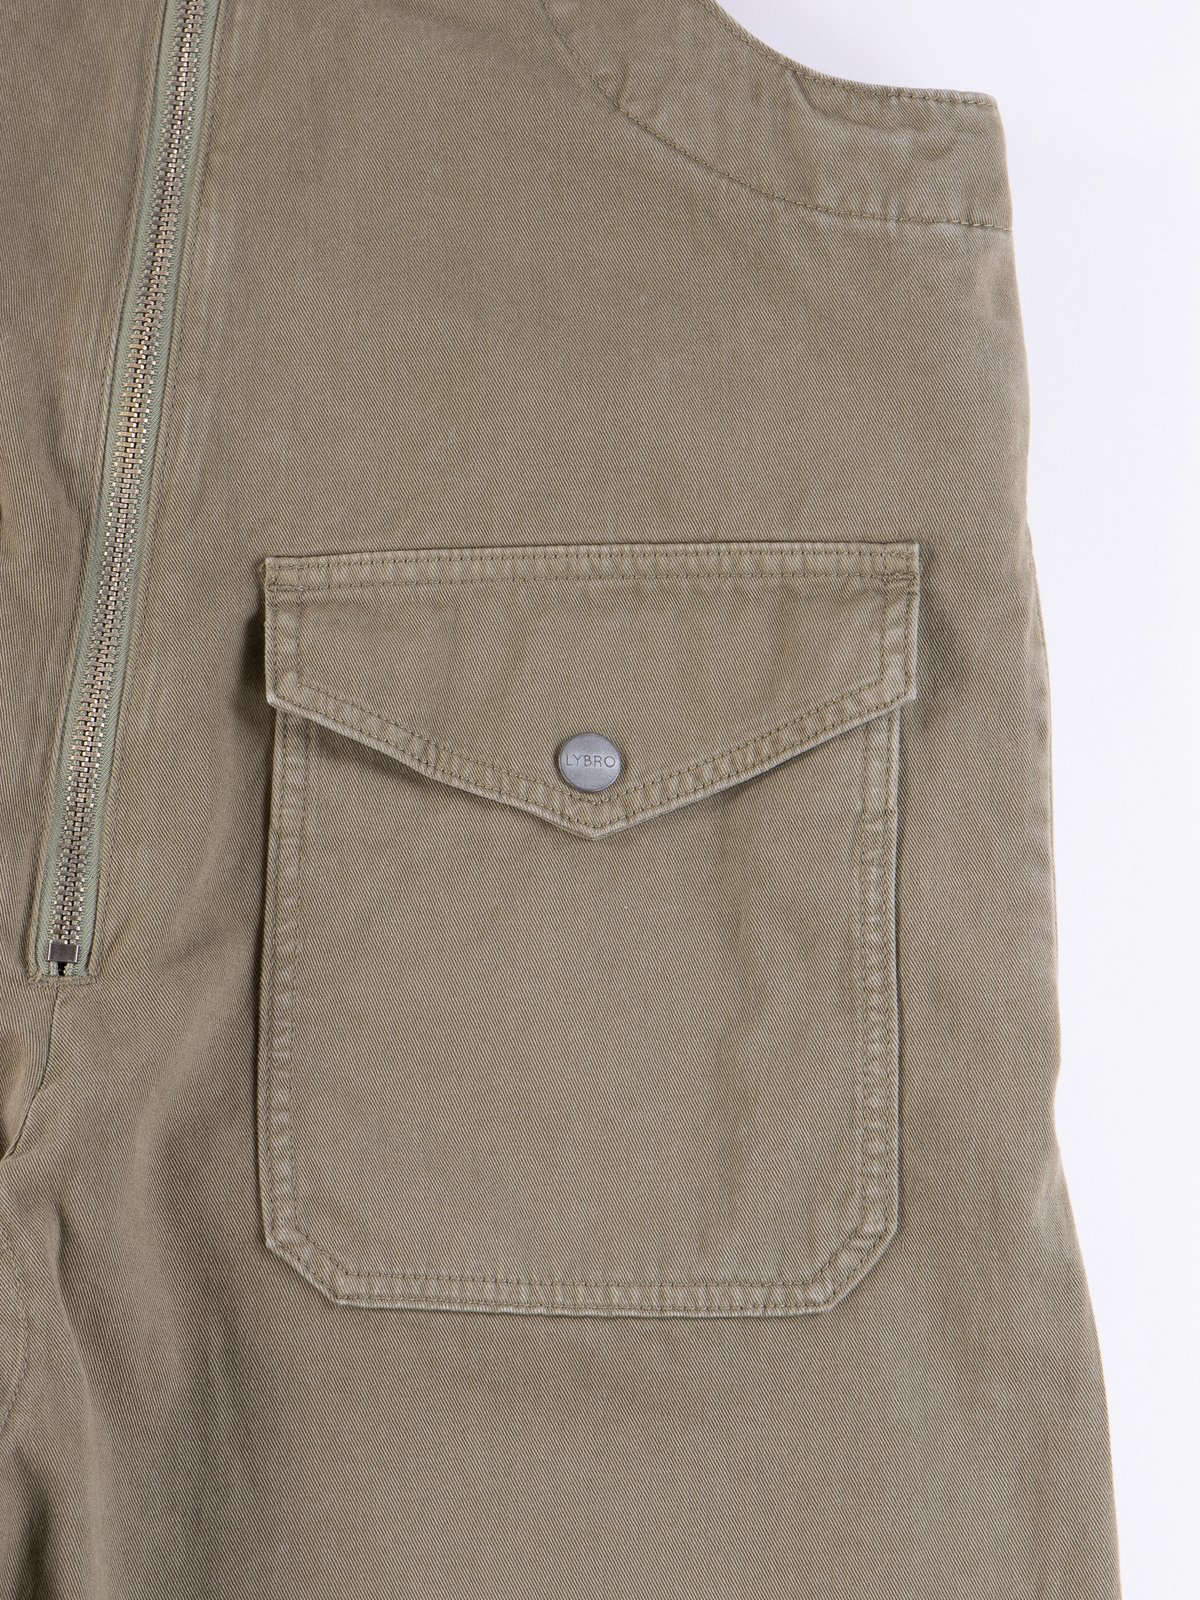 Lybro Washed Army Deck Waders - Image 4